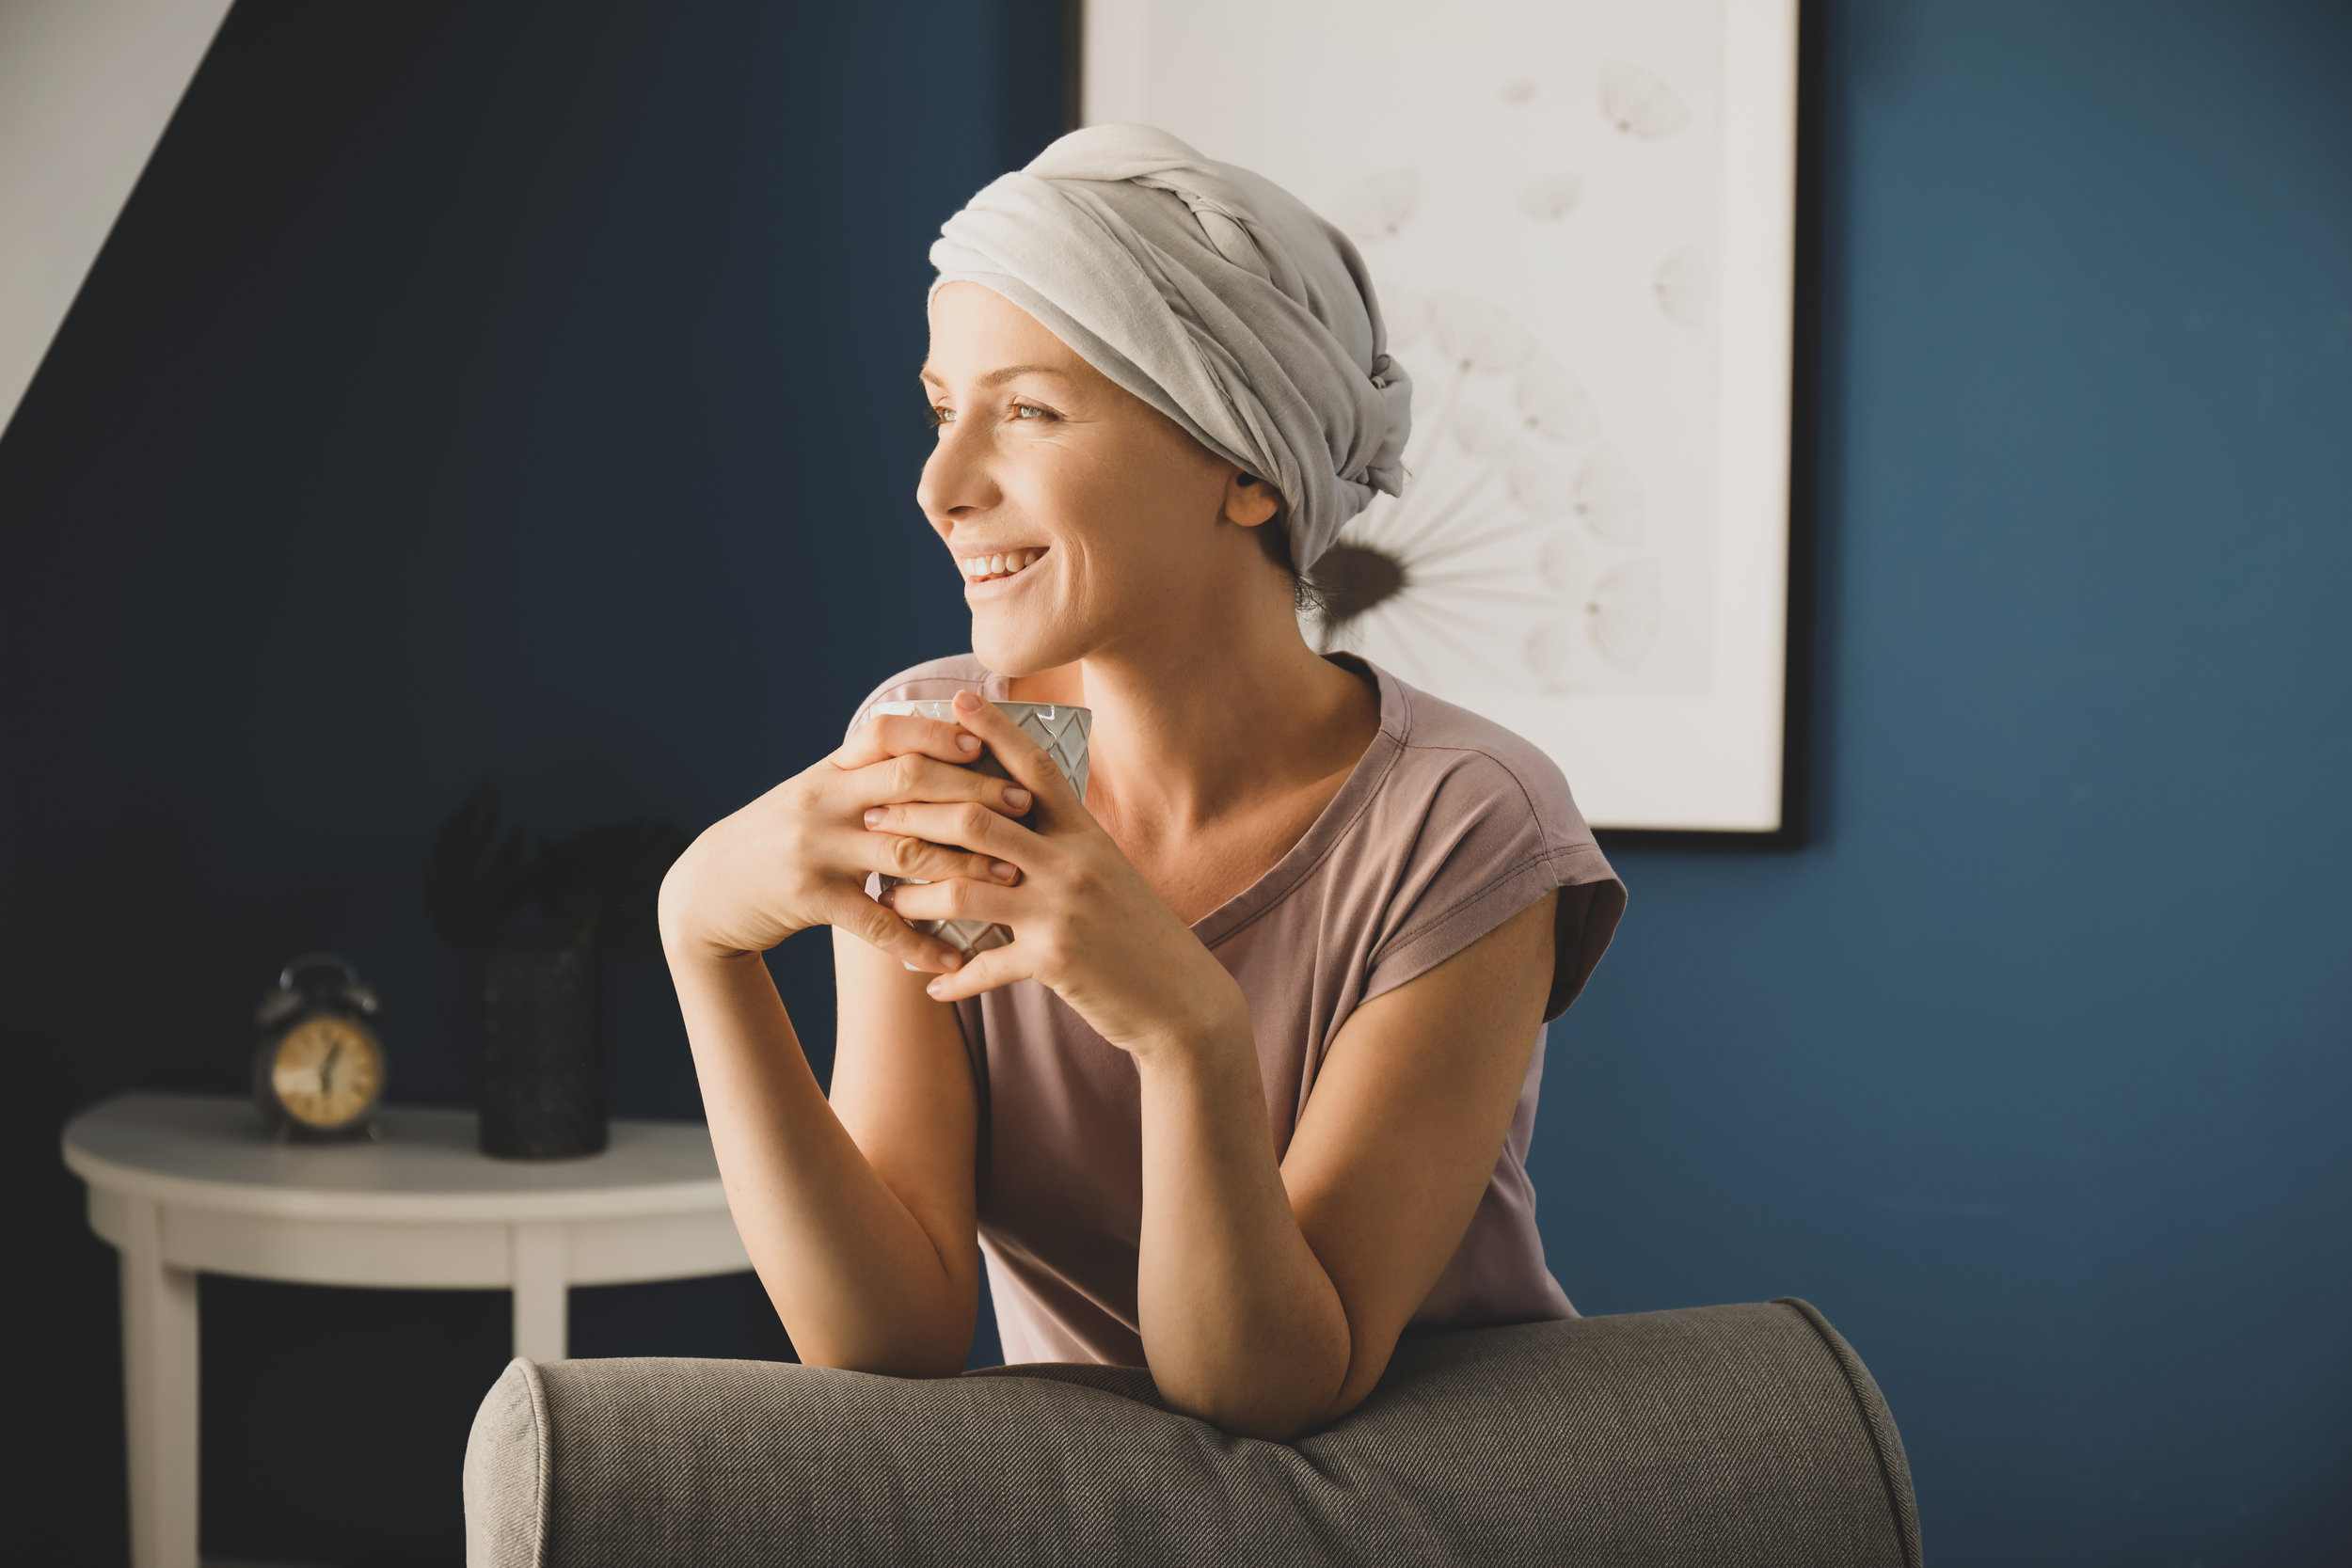 Oncology - Our oncology treatments provide compassionate care designed to promote healing, relieve stress, reduce pain and supplement other treatment areas, including:• Integrative care pre/post and during chemo and/or radiation therapy• Pain Reduction• Sleep Support• Stress reduction• Immunity Boost Support